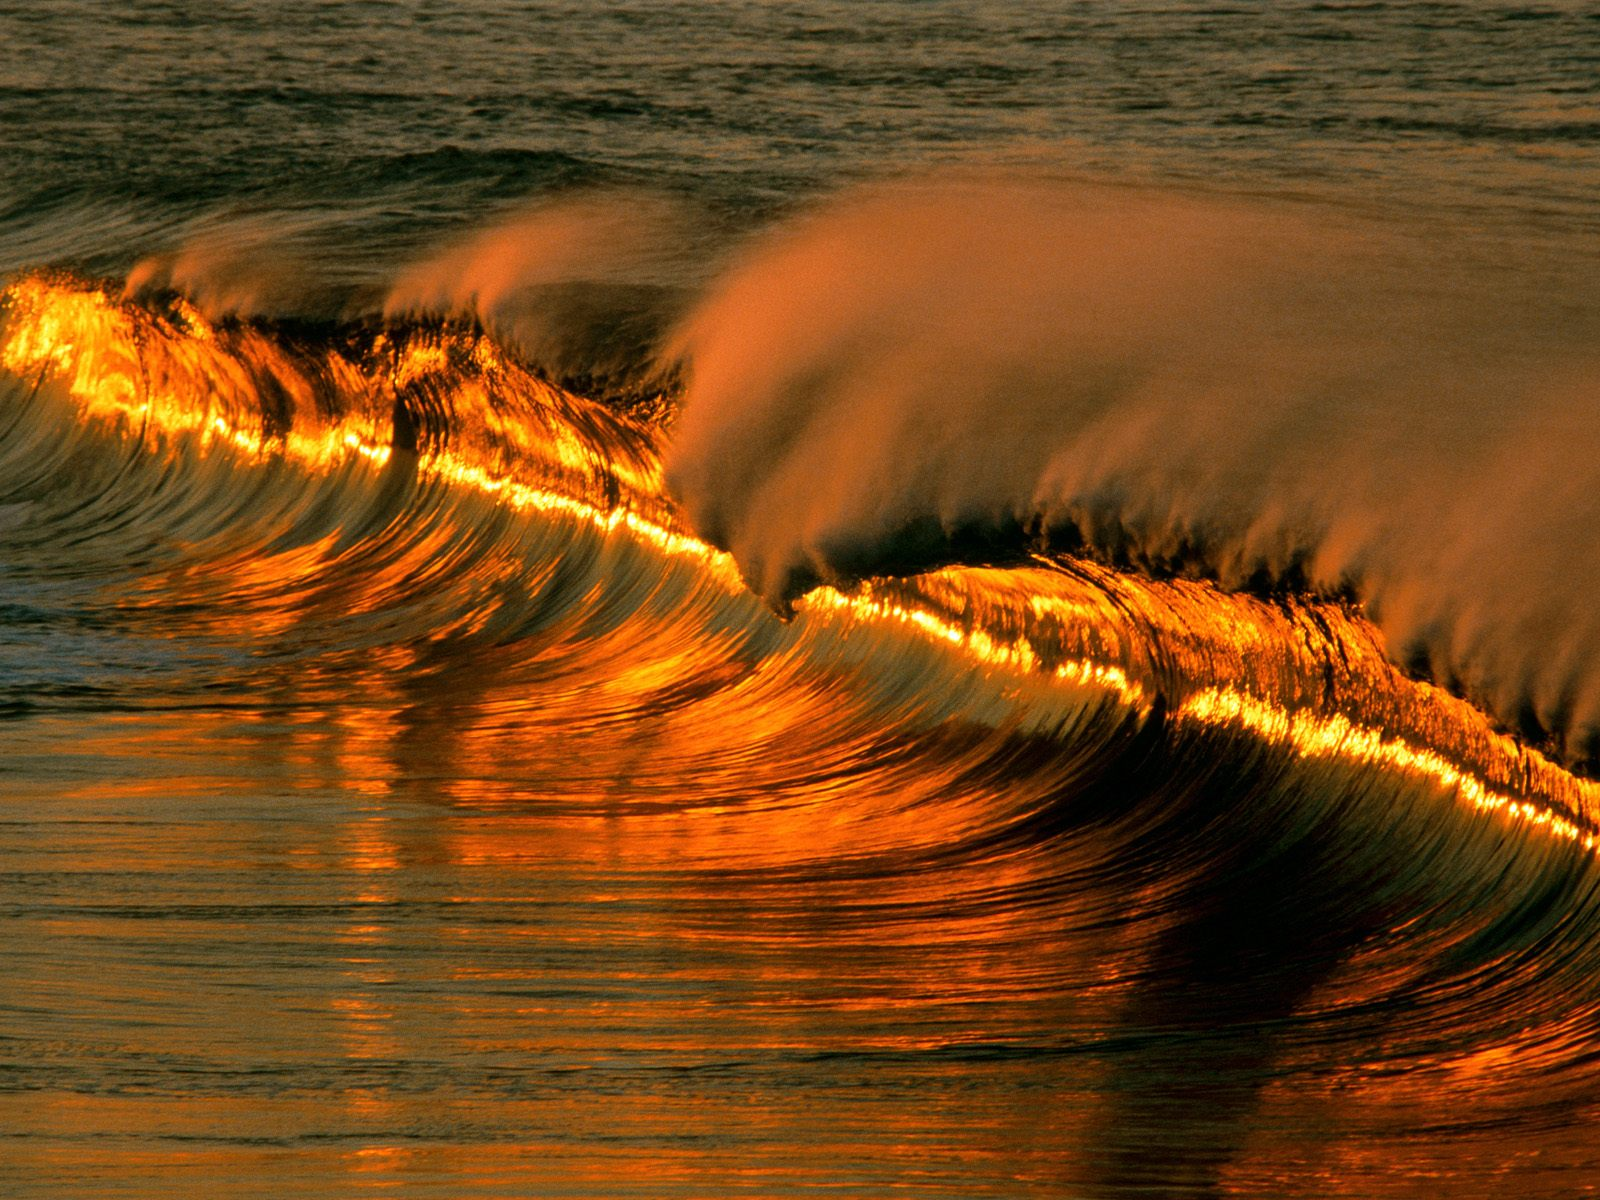 Golden-Wave-Sunset-Puerto-Escondido-Mexico, Source: http://www.travelwalls.net/wp-content/uploads/2012/08/Golden-Wave-Sunset-Puerto-Escondido-Oaxaca-Mexico.jpg